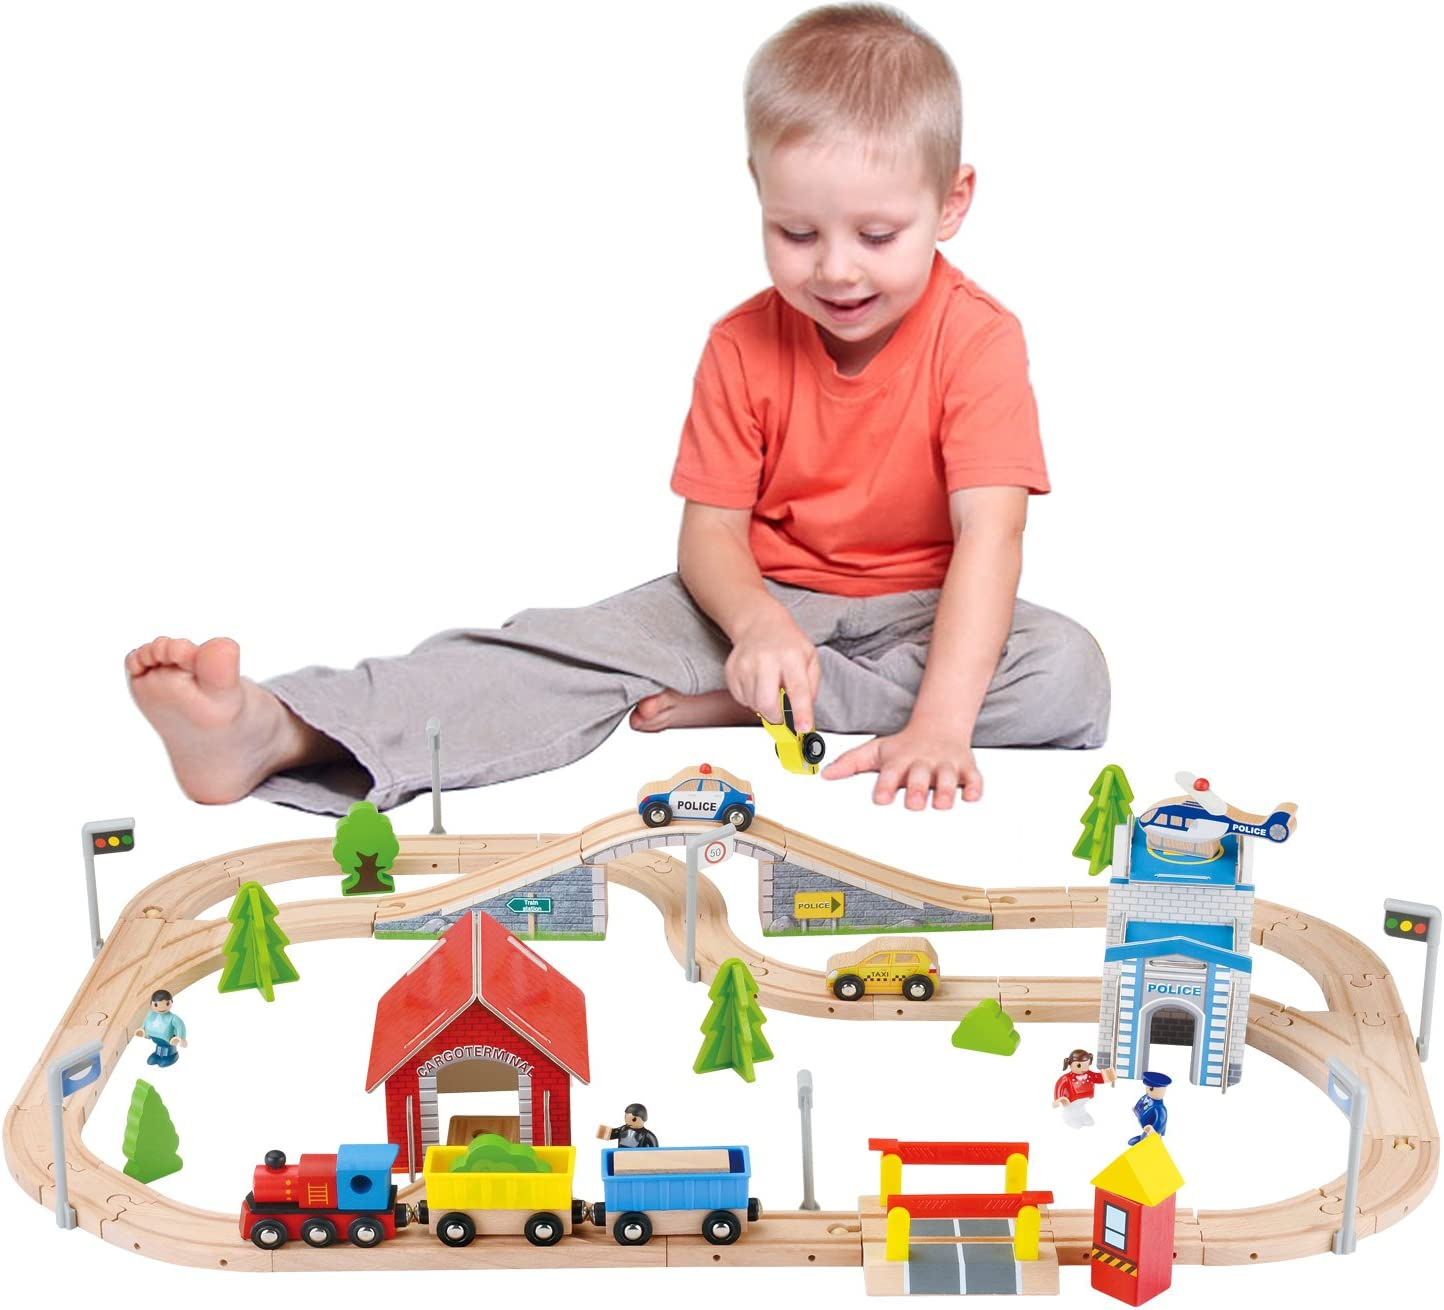 Wooden Train Set Toy with Max 90% OFF 2 Accessories Deluxe Dollhouse Limited time trial price 80Pcs